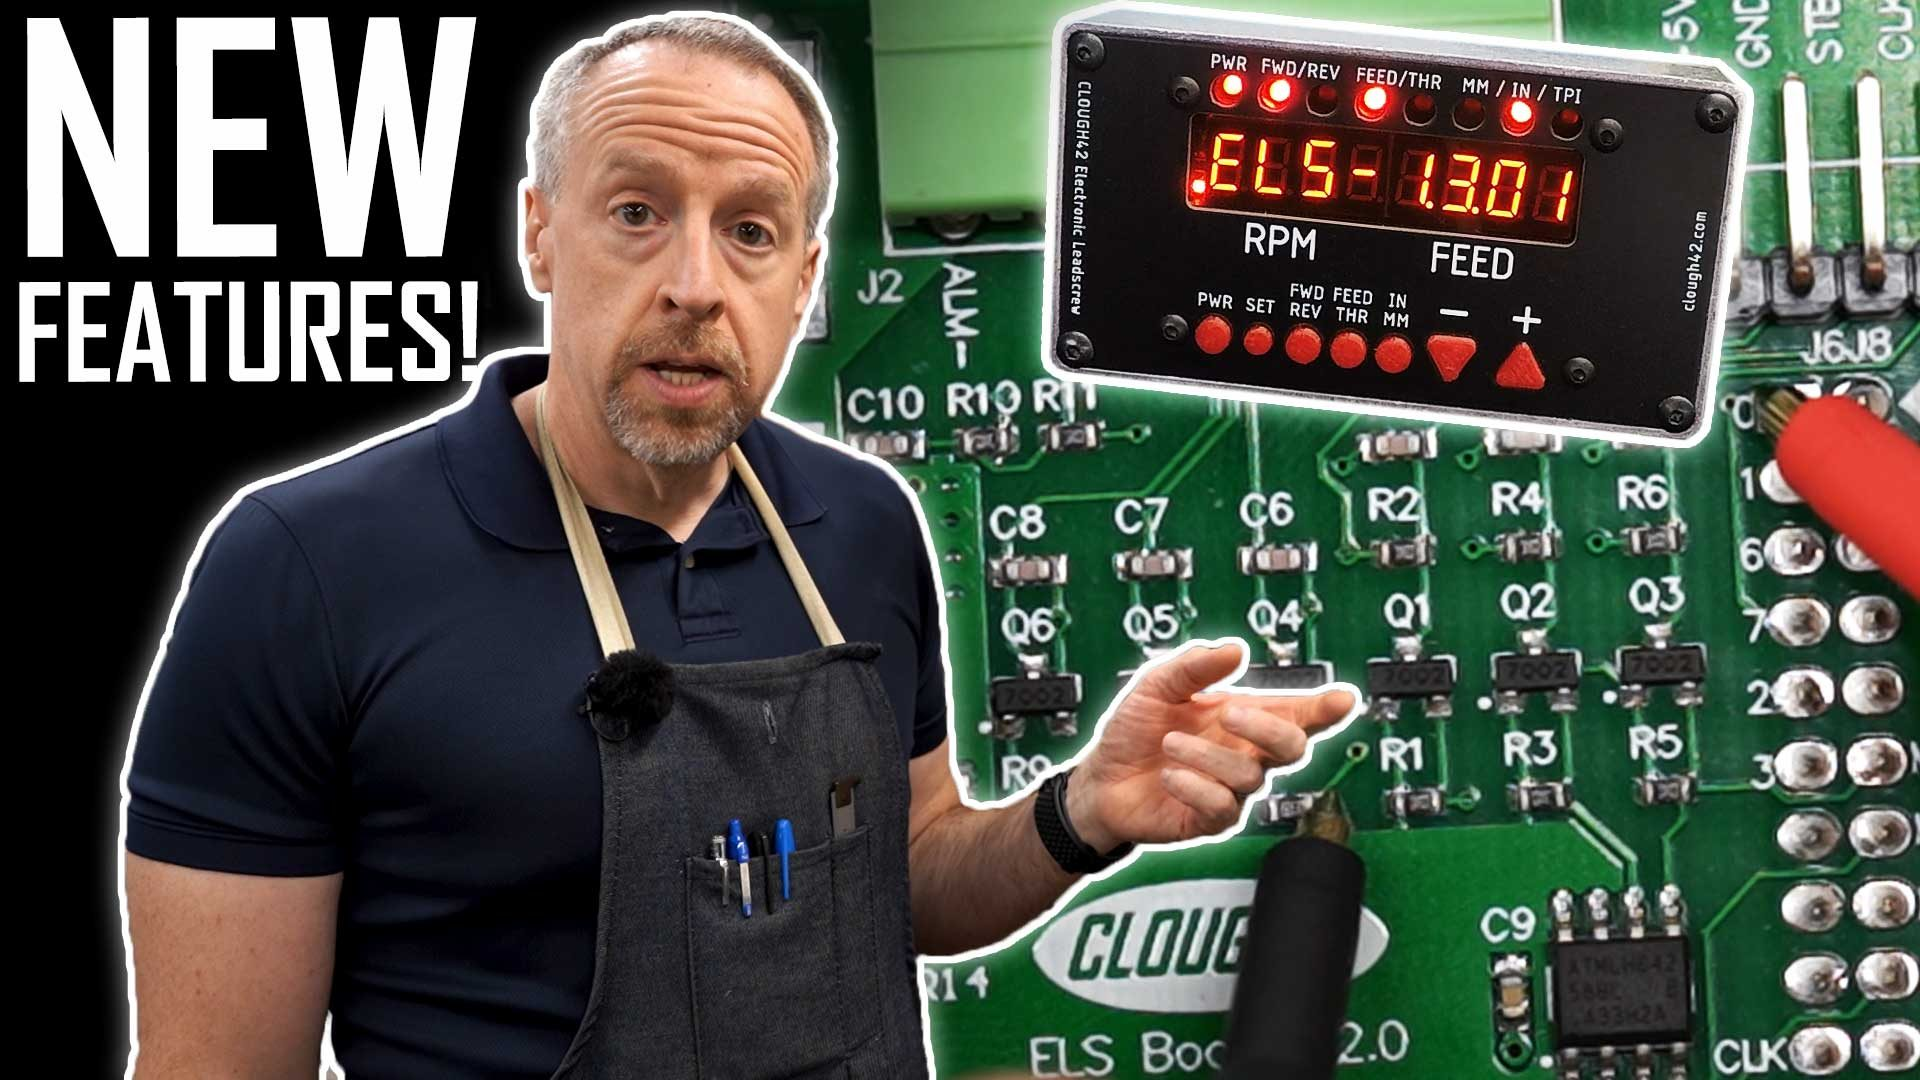 ELS Software Updates and Troubleshooting Tips [Electronic Leadscrew Part 20]